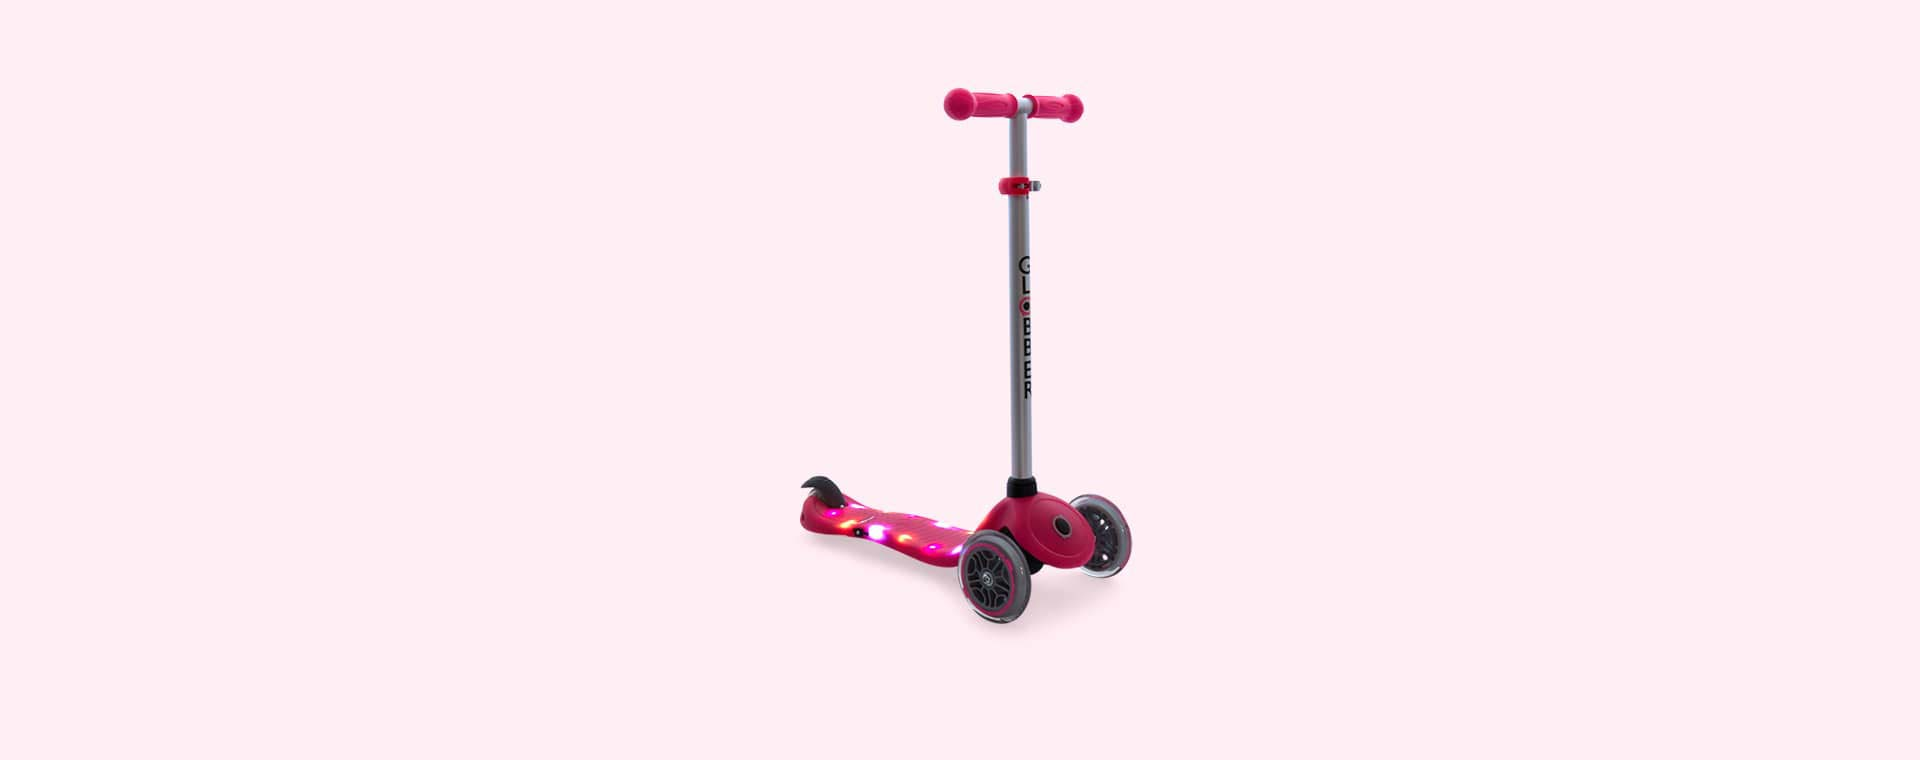 Deep Pink Globber Globber Primo Starlight Scooter